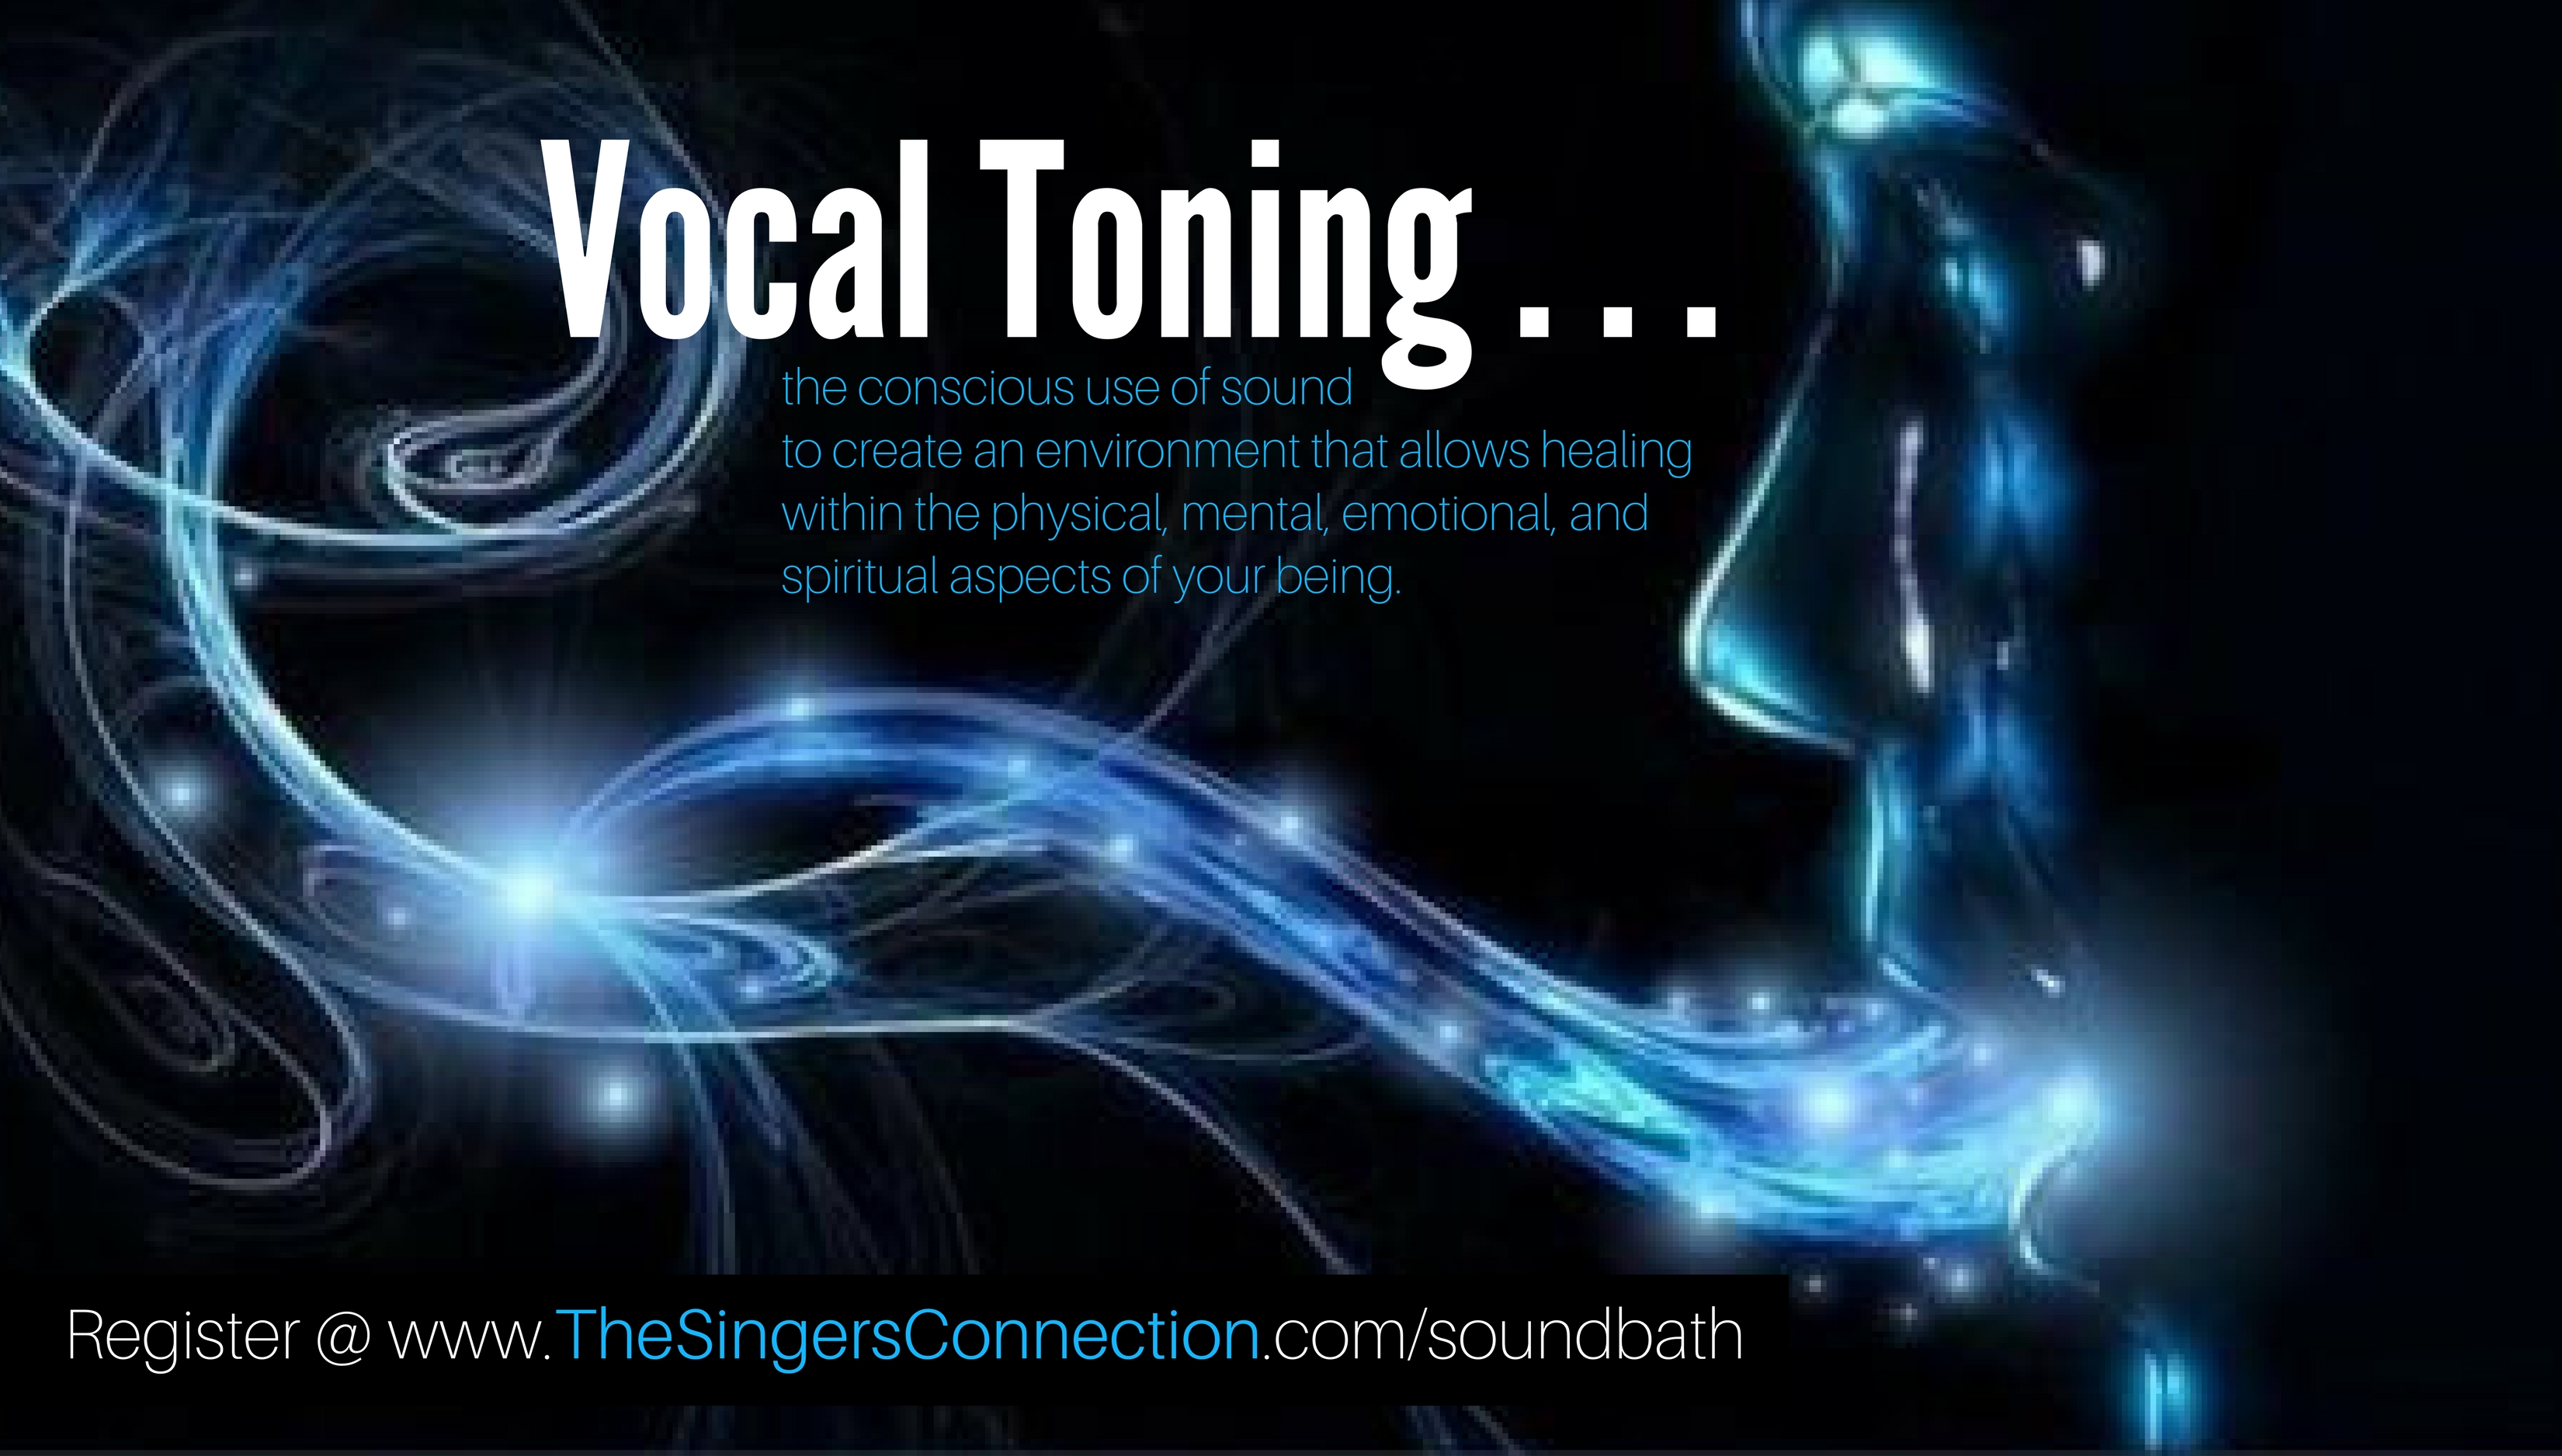 Learn how to use your voice with intention to create an environment that allows healing within the physical, mental, emotional, and spiritual aspects of your being.